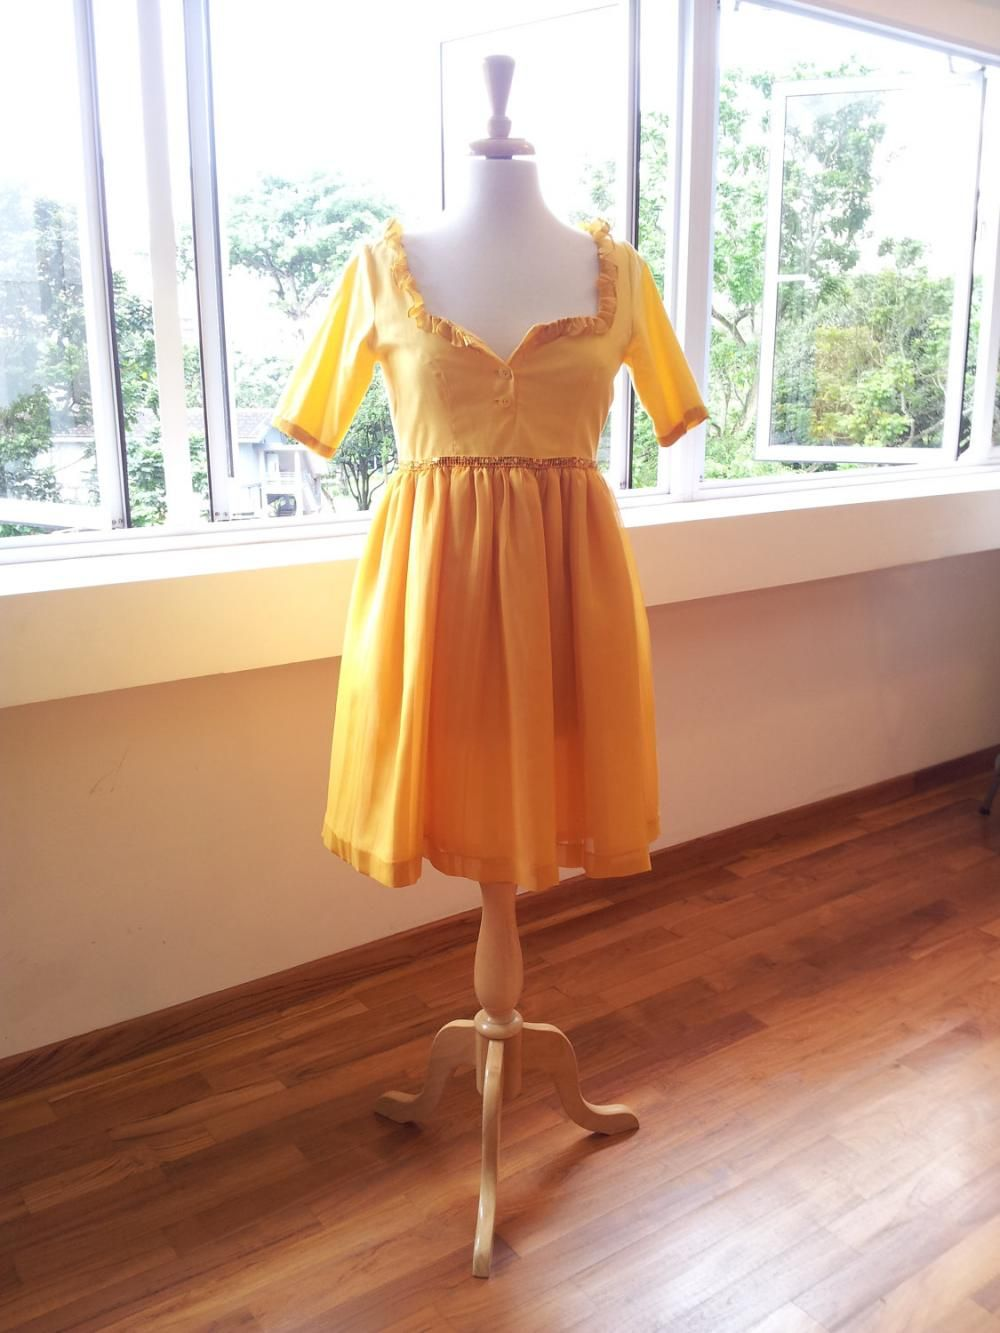 Romantic Yellow Dess - Crazy Happy Sun Dress